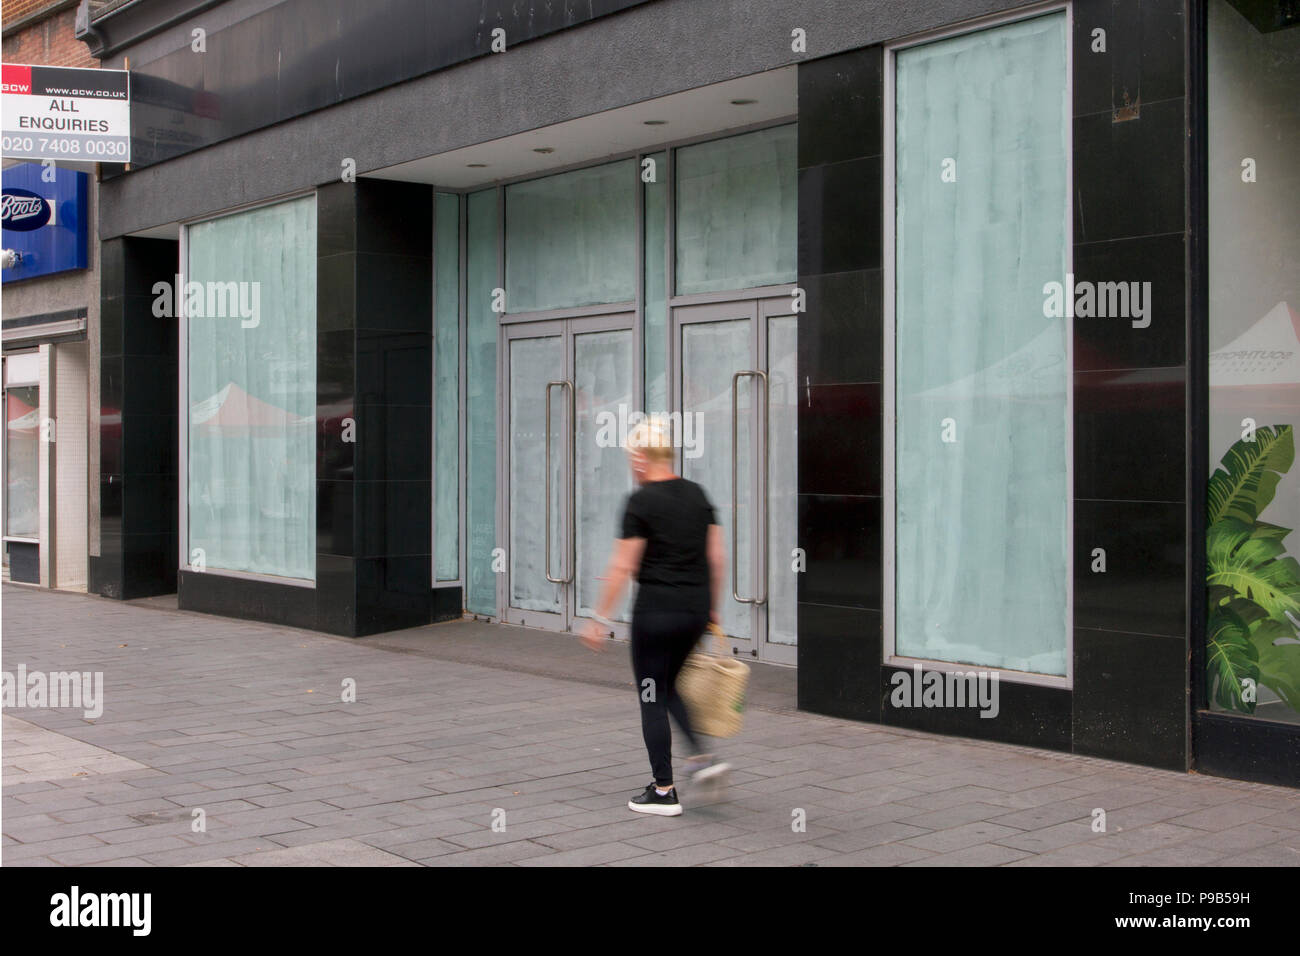 Southport, Merseyside, 17/07/2018. Chapel Street Summer Sales as further high street stores face closure in the seaside town. Market stalls and street traders now seem to dominate the retail landscapes as traditional fashion and discount stores become casualties of high business rates.  Credit: MediaWorldImages/AlamyLiveNews. - Stock Image